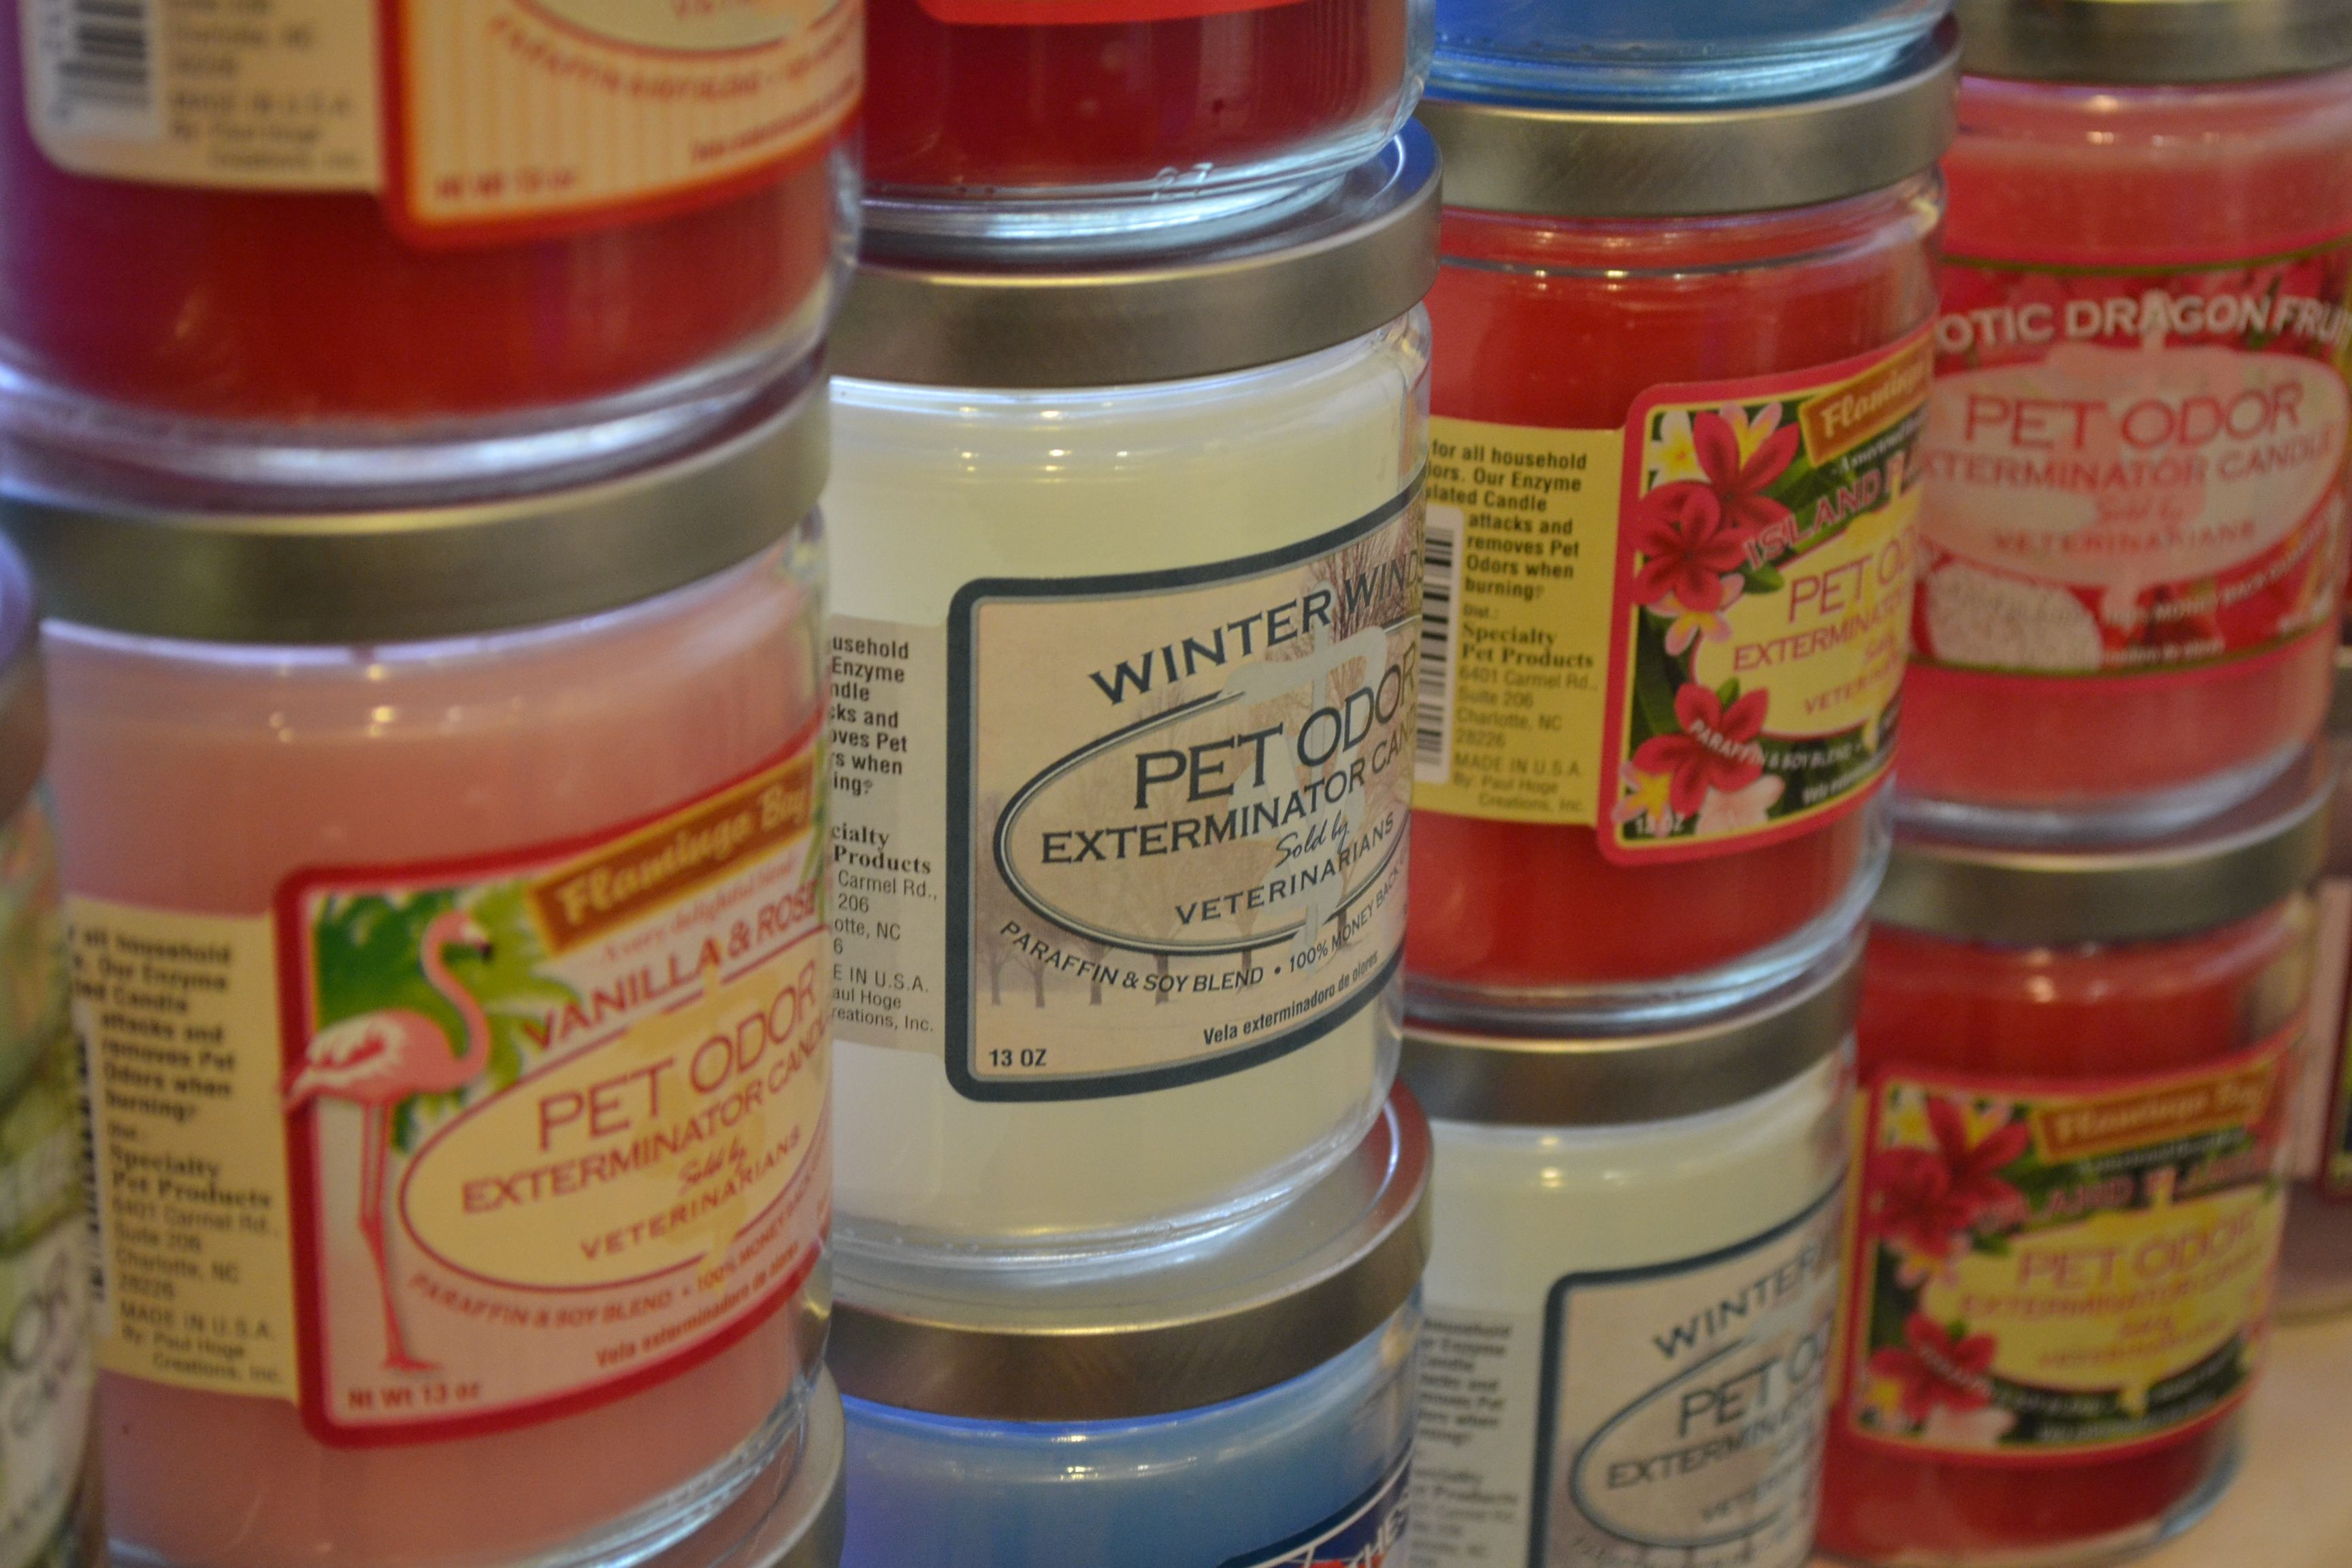 These Pet Odor candles are the best! We carry many